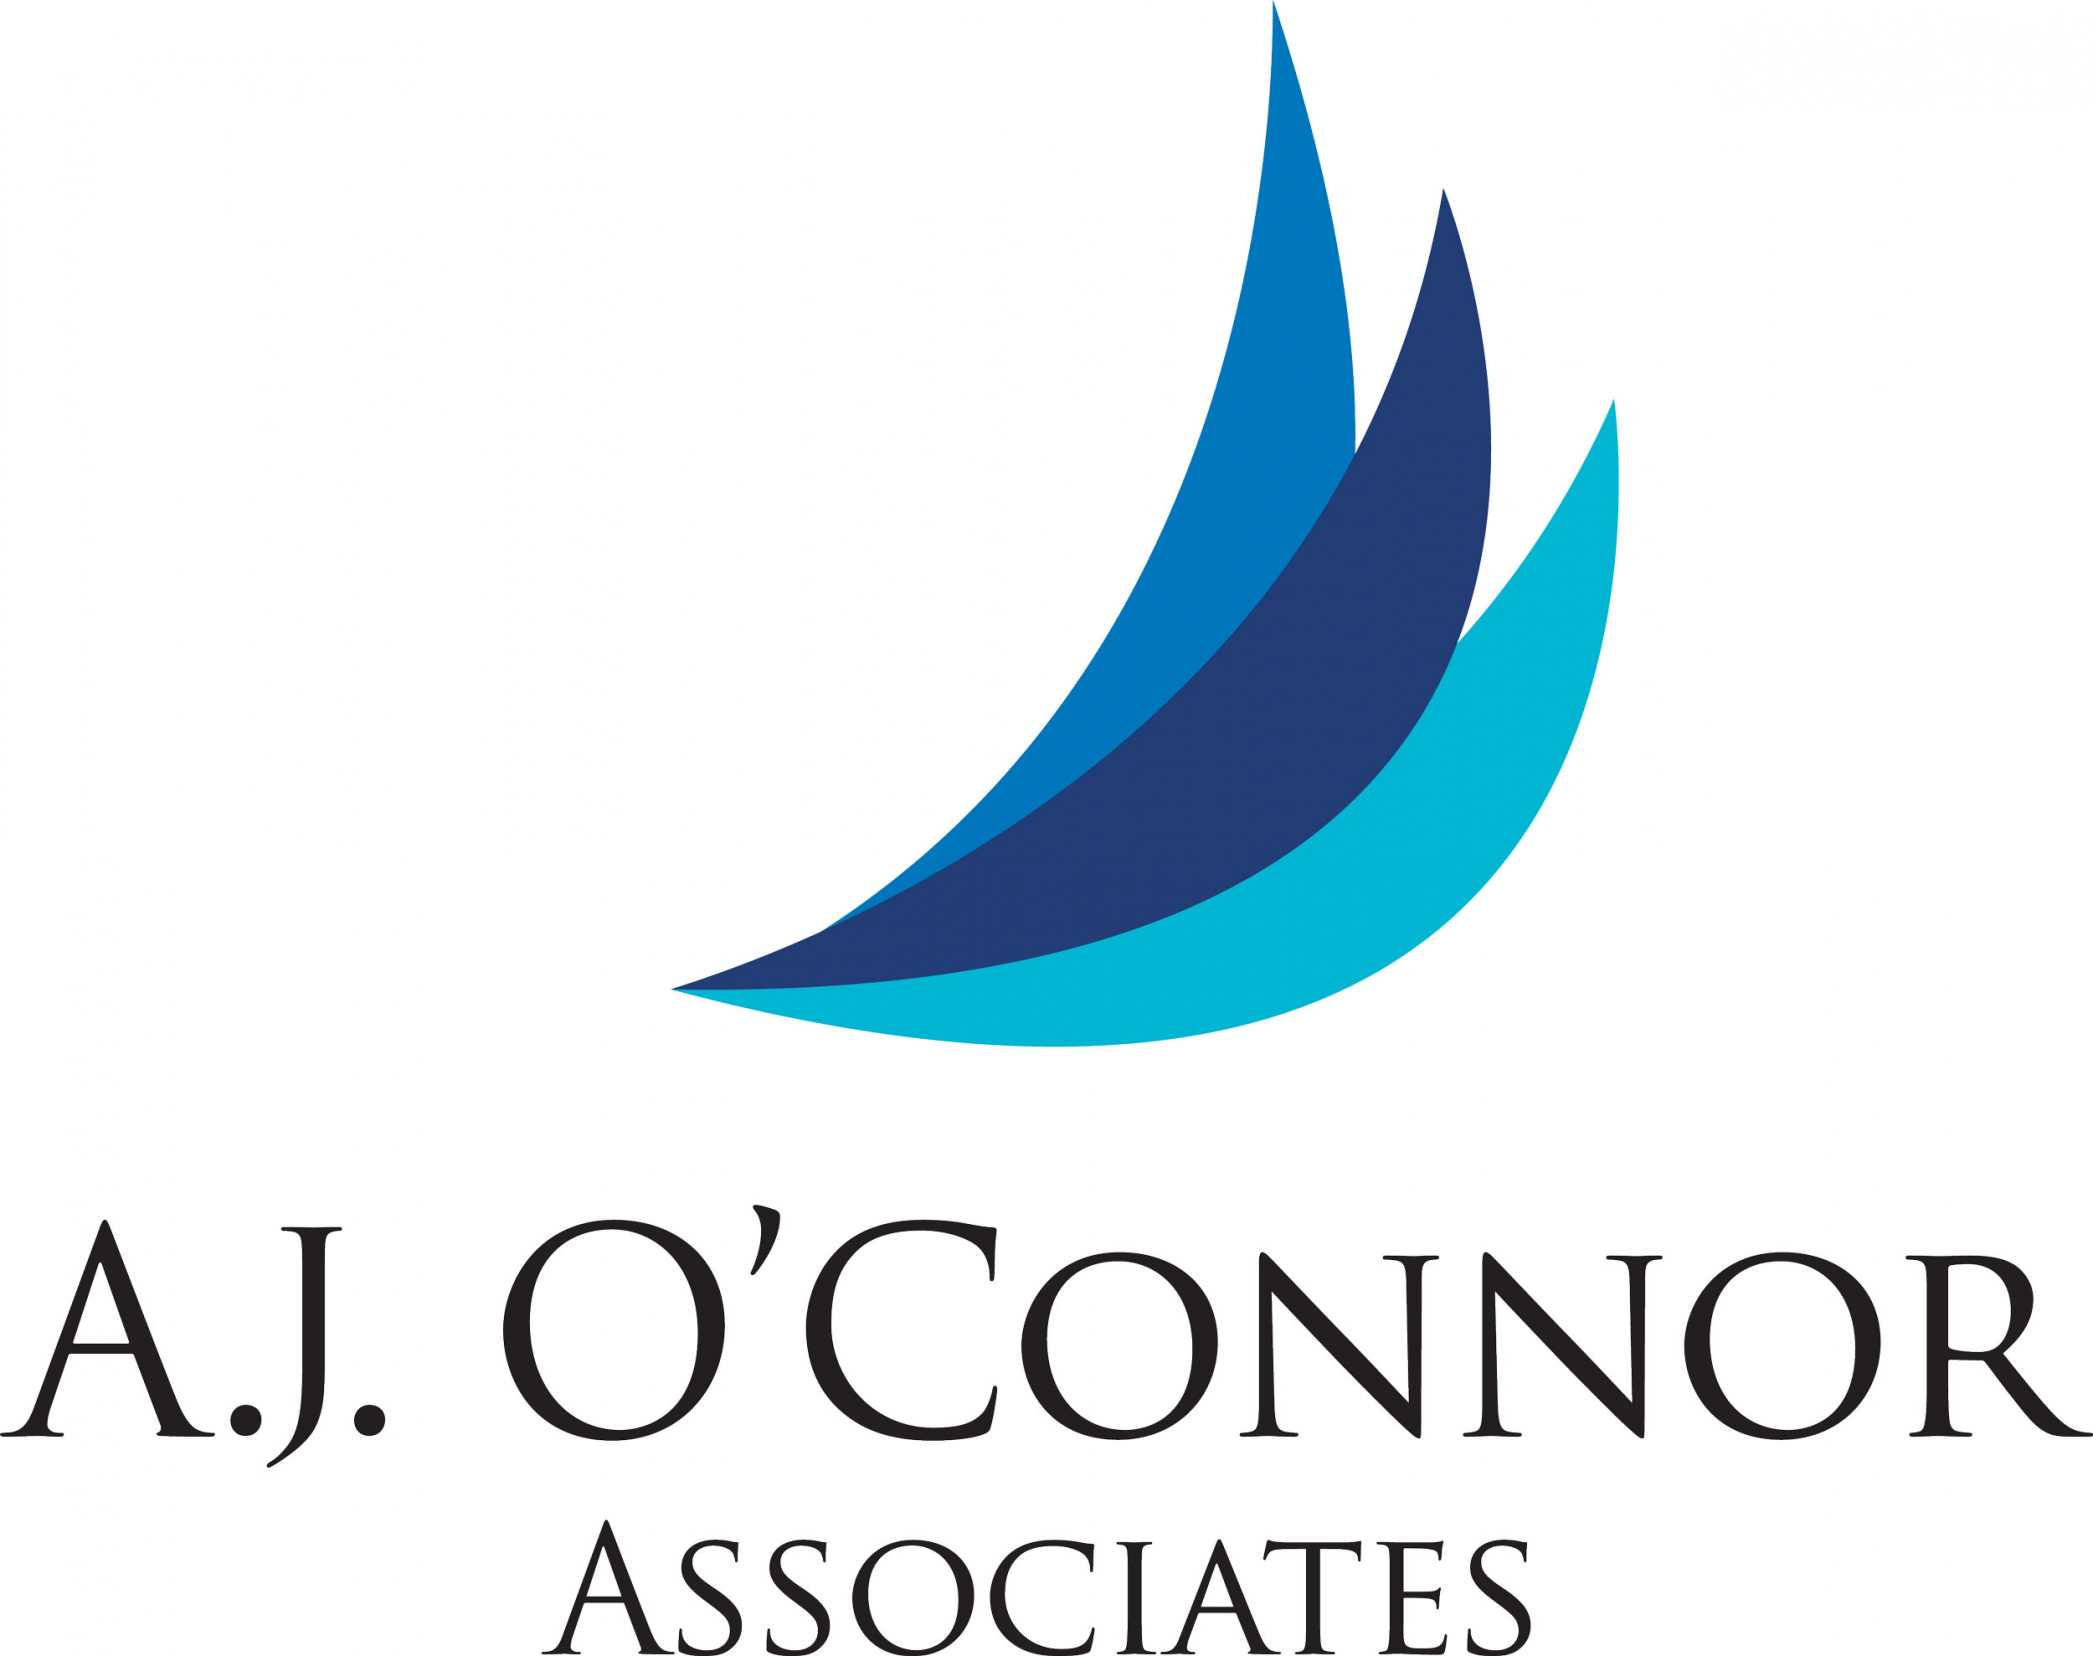 A.J. O'Connor Associates (AJO) Logo